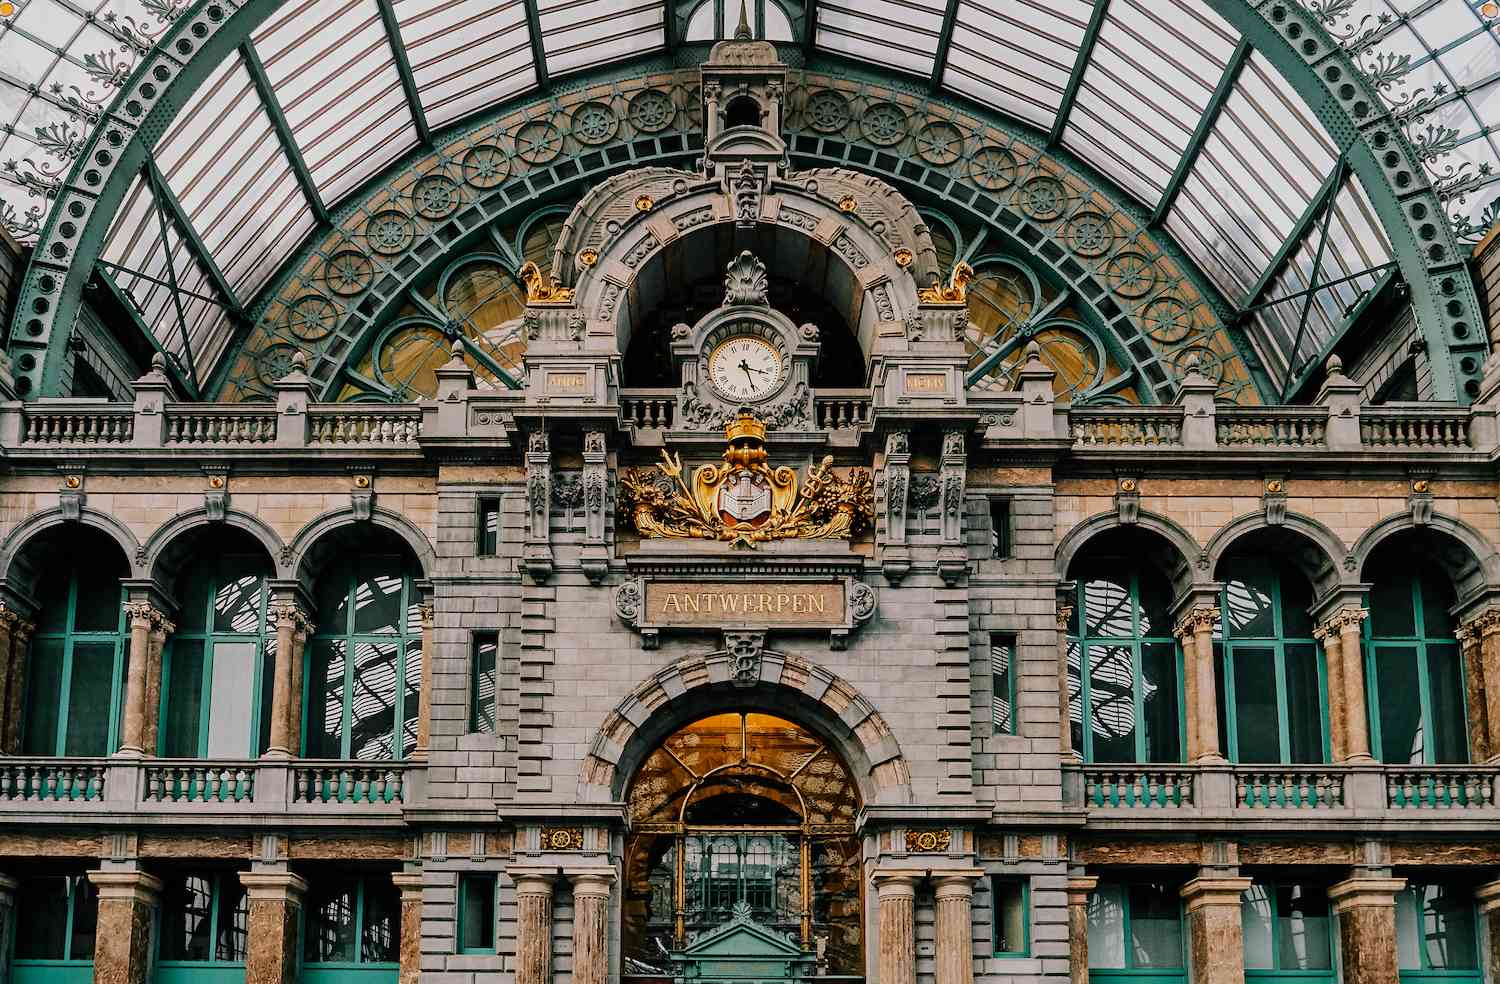 The palatial design of Antwerp Central Station